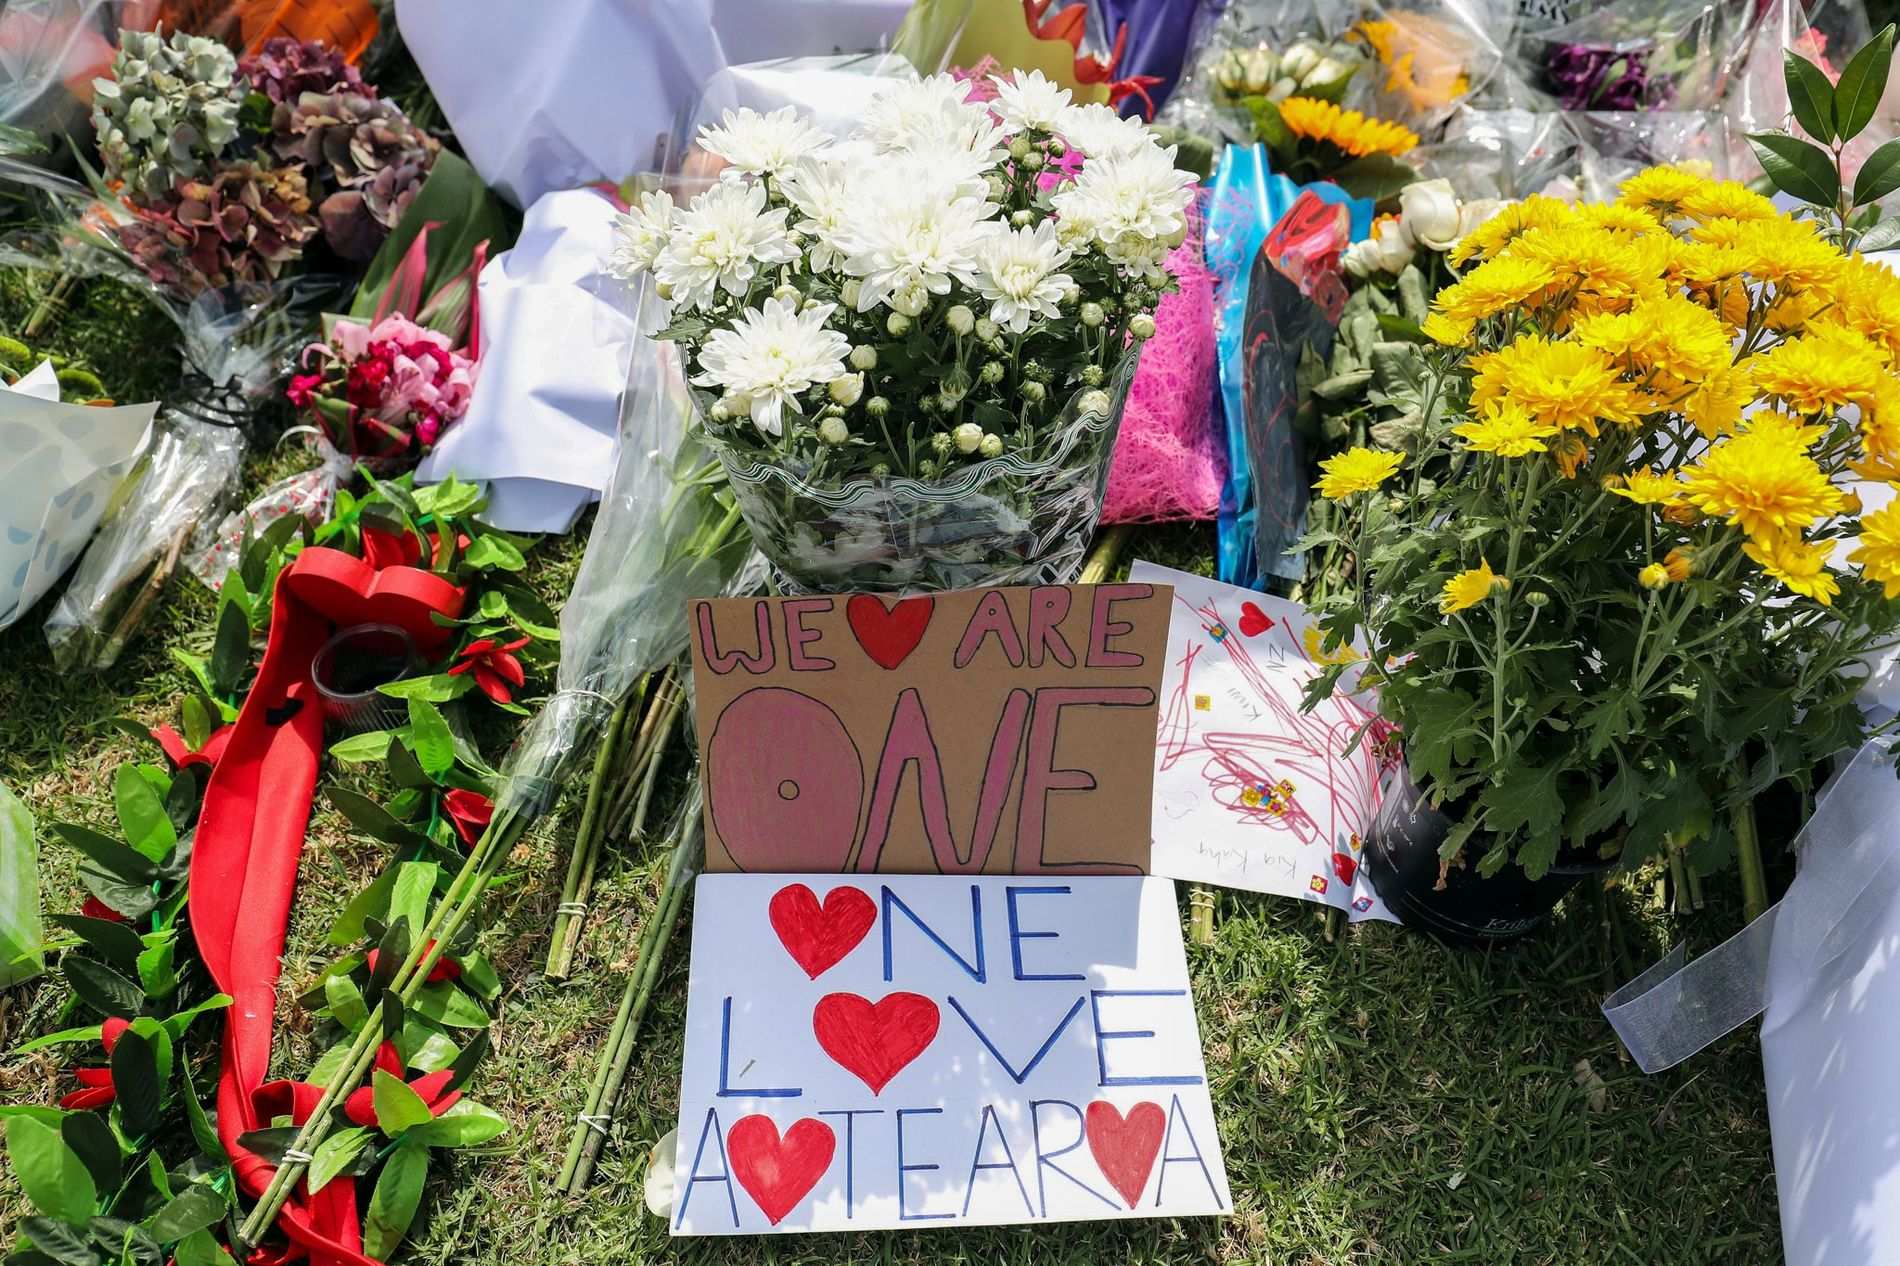 <p>Flowers and words from mourners represent an outpouring of love and unity at Masjid Umar mosque in Christchurch, New Zealand. Fifty people died in the mass shootings on March 15, and 50 more were injured.</p>